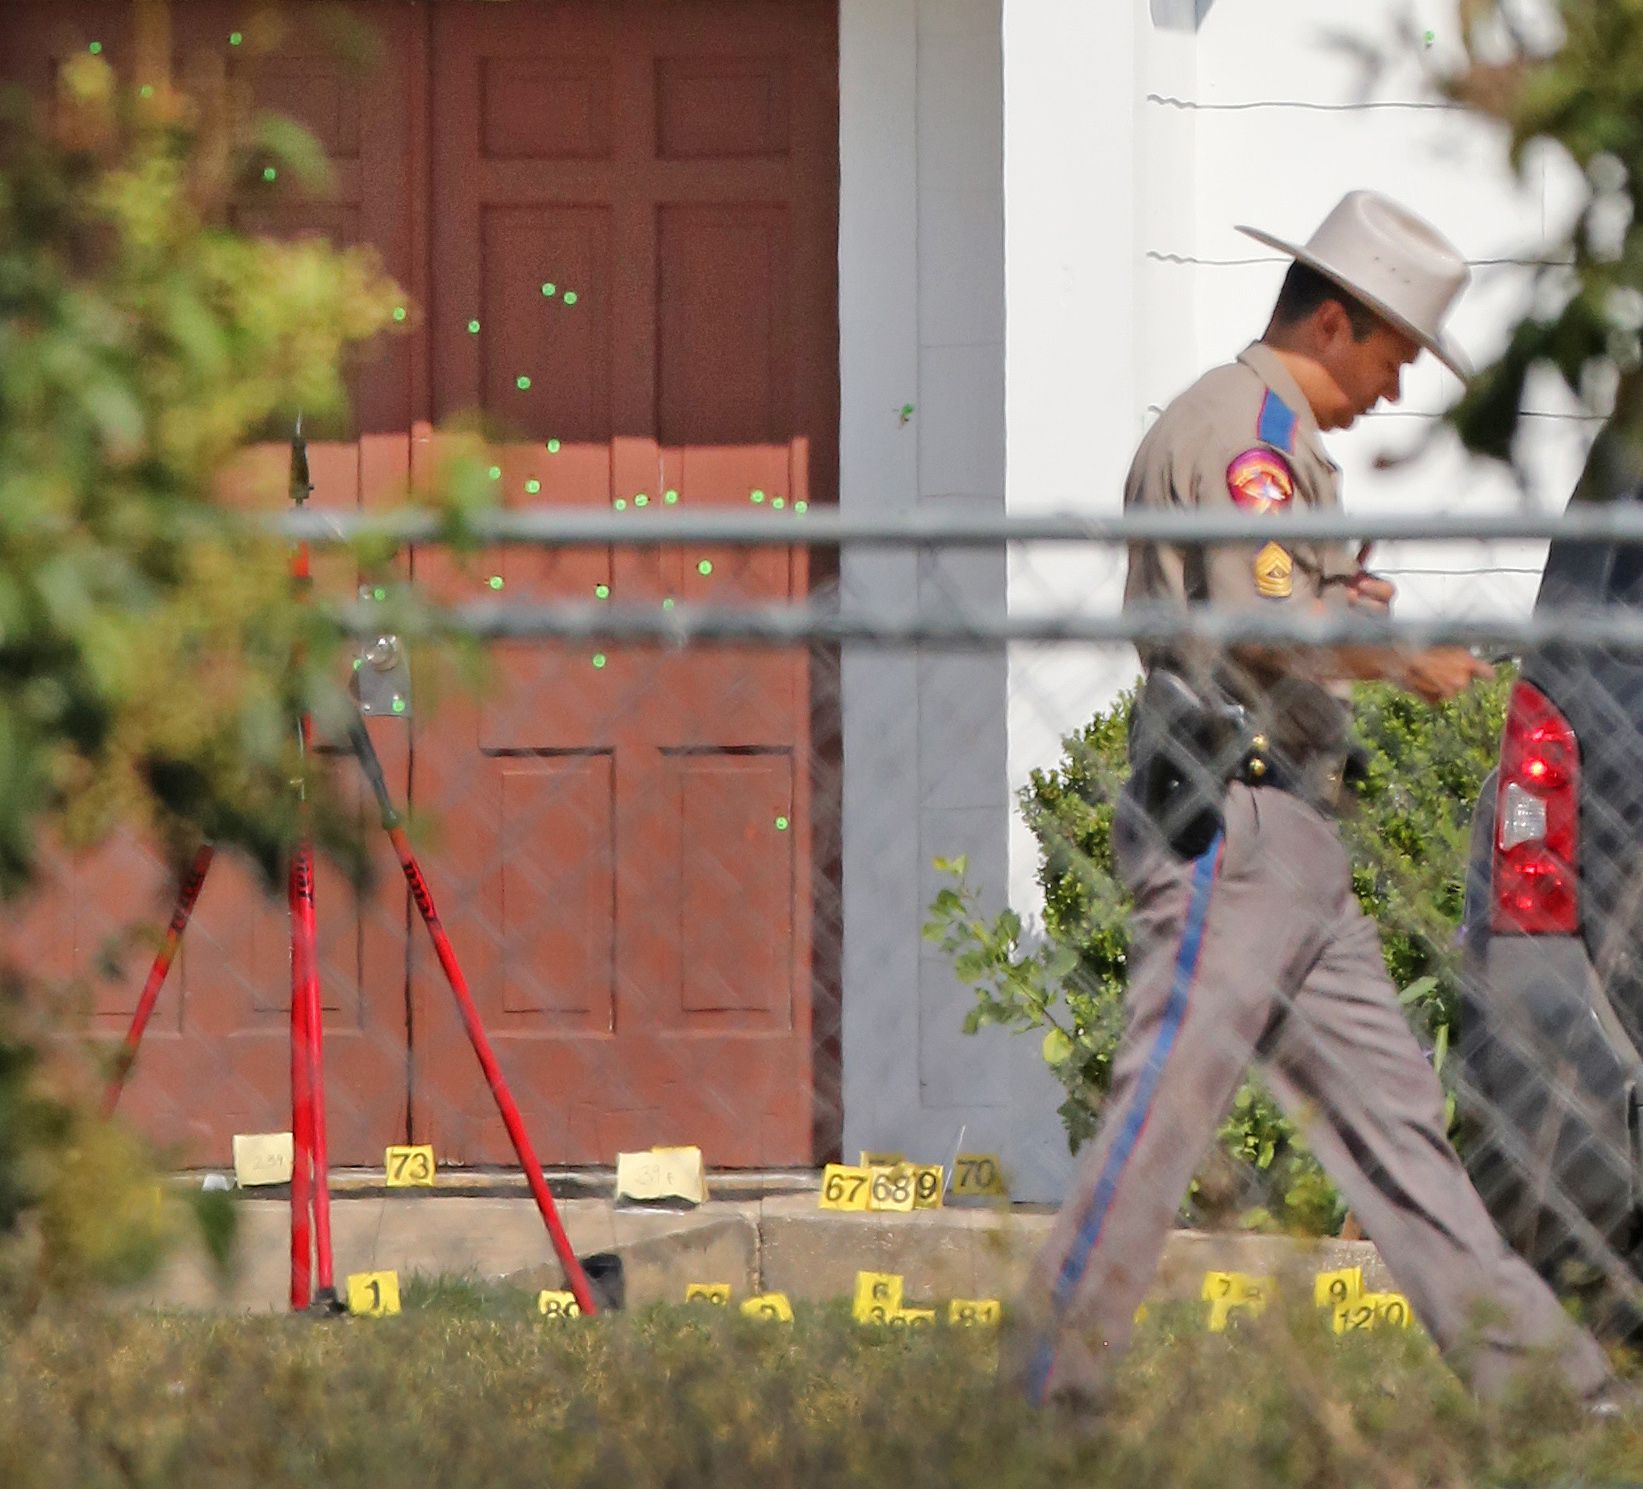 The front door of the First Baptist Church in Sutherland Springs shows multiple markings for bullet holes, with evidence of shell casings on the ground, as officials continue to investigate Sunday's shooting at a Baptist church in Sutherland Springs, Texas.